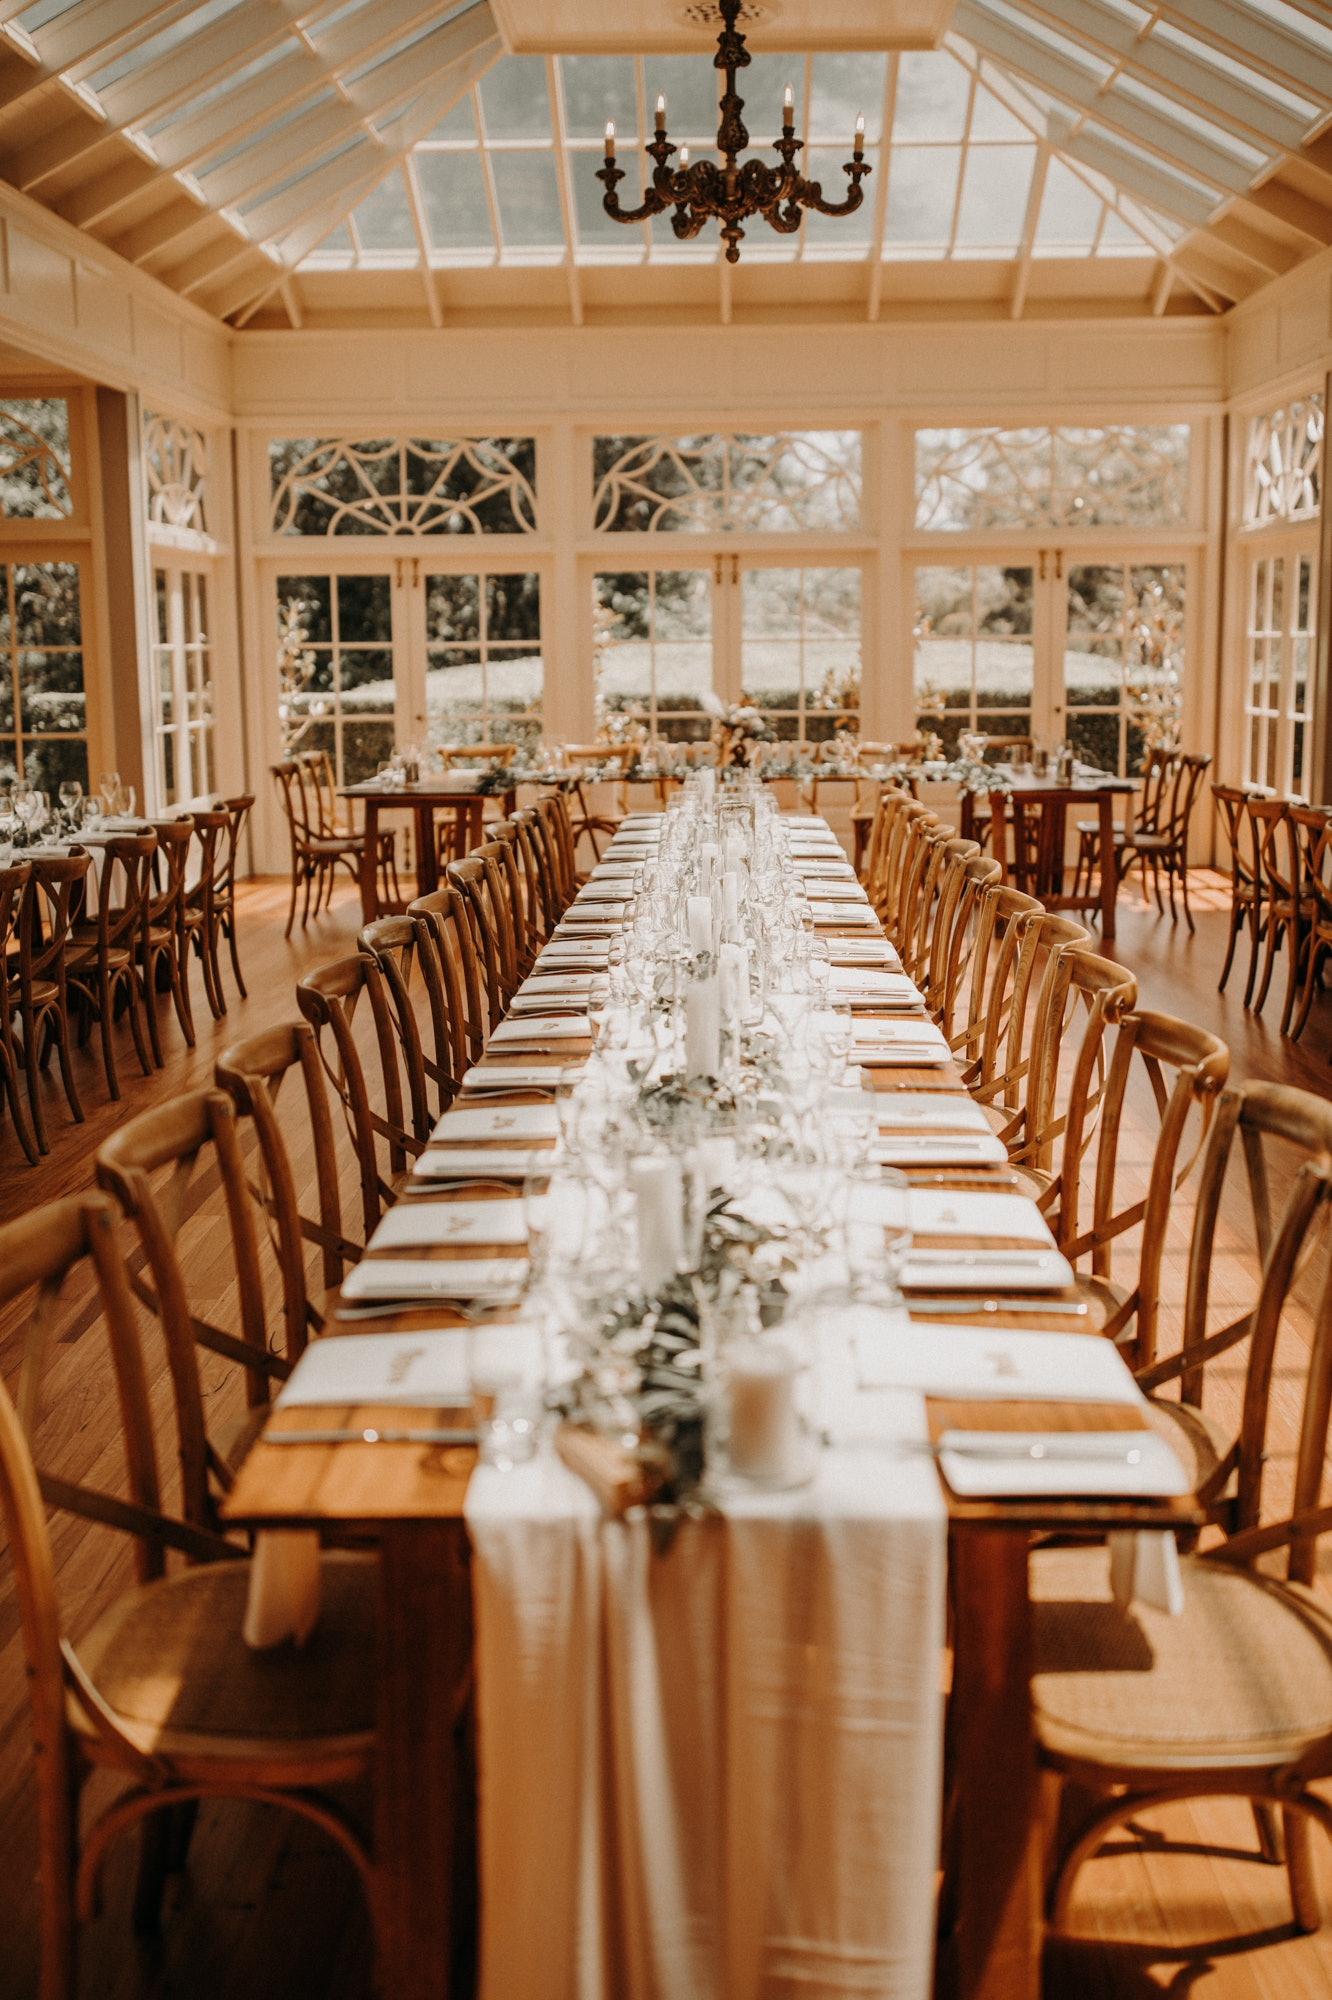 Wedding reception with wooden tables and chairs